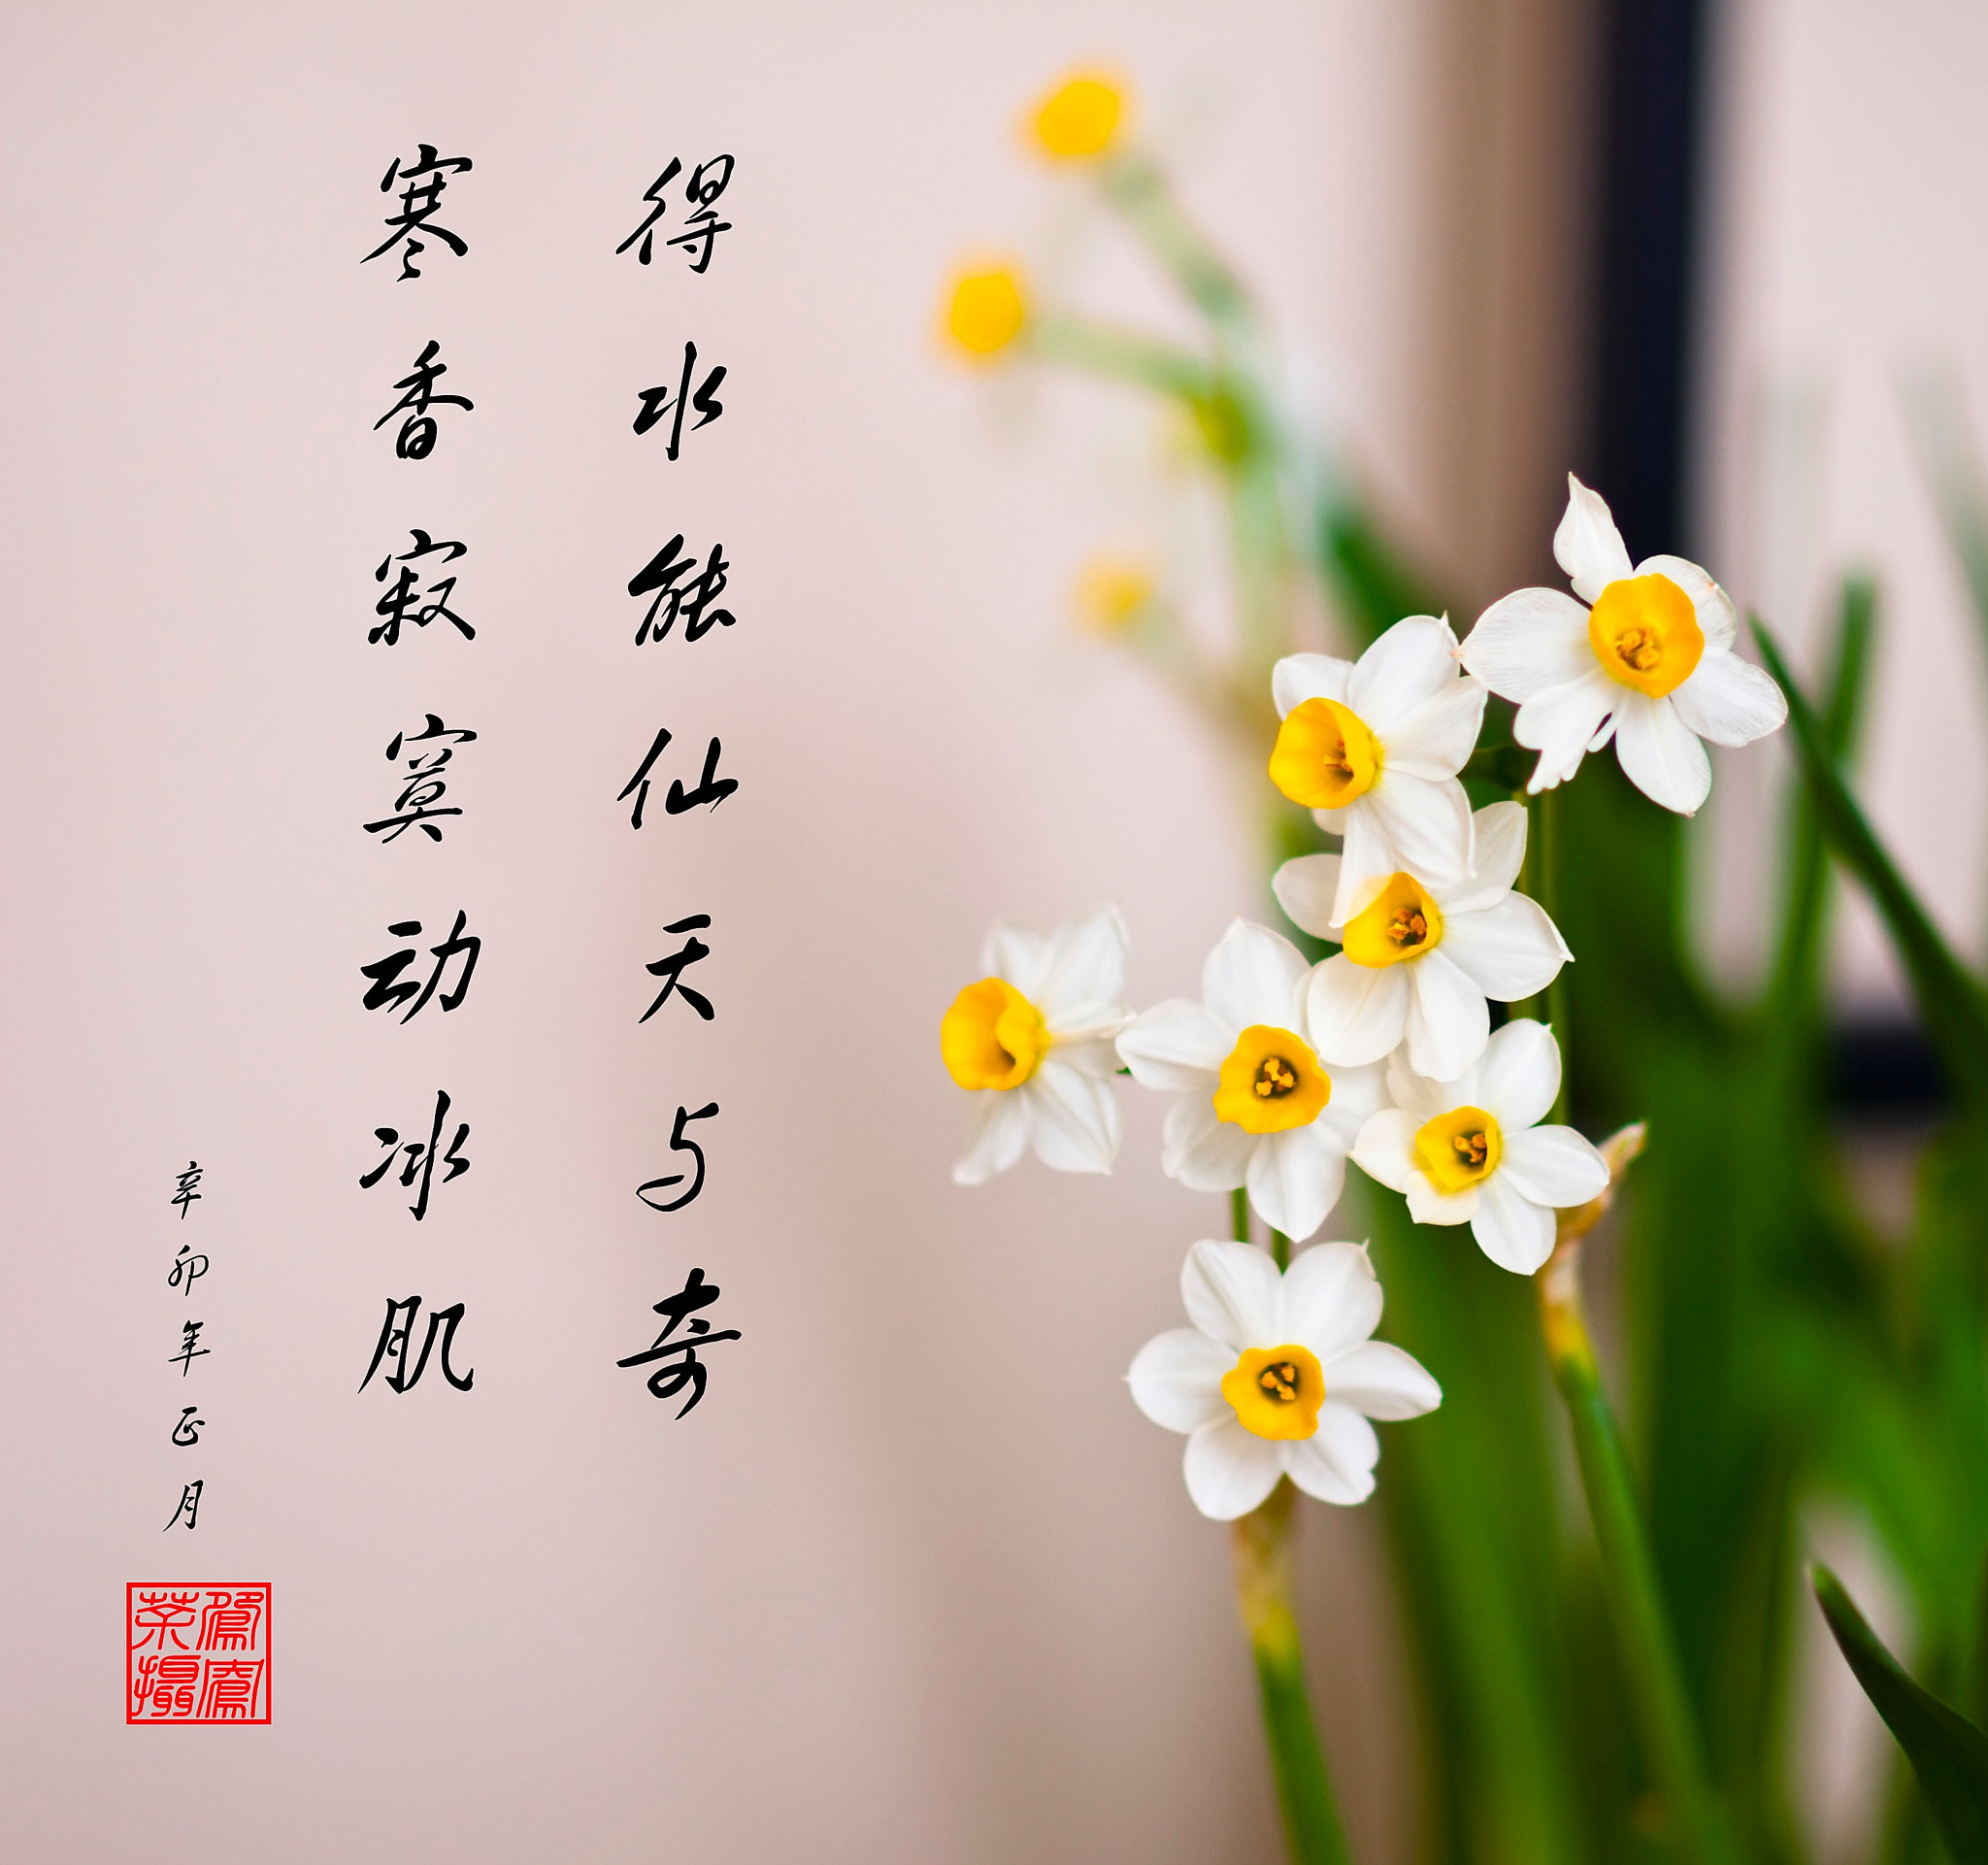 Photograph Poem and Narcissus by Joseph Qiu on 500px